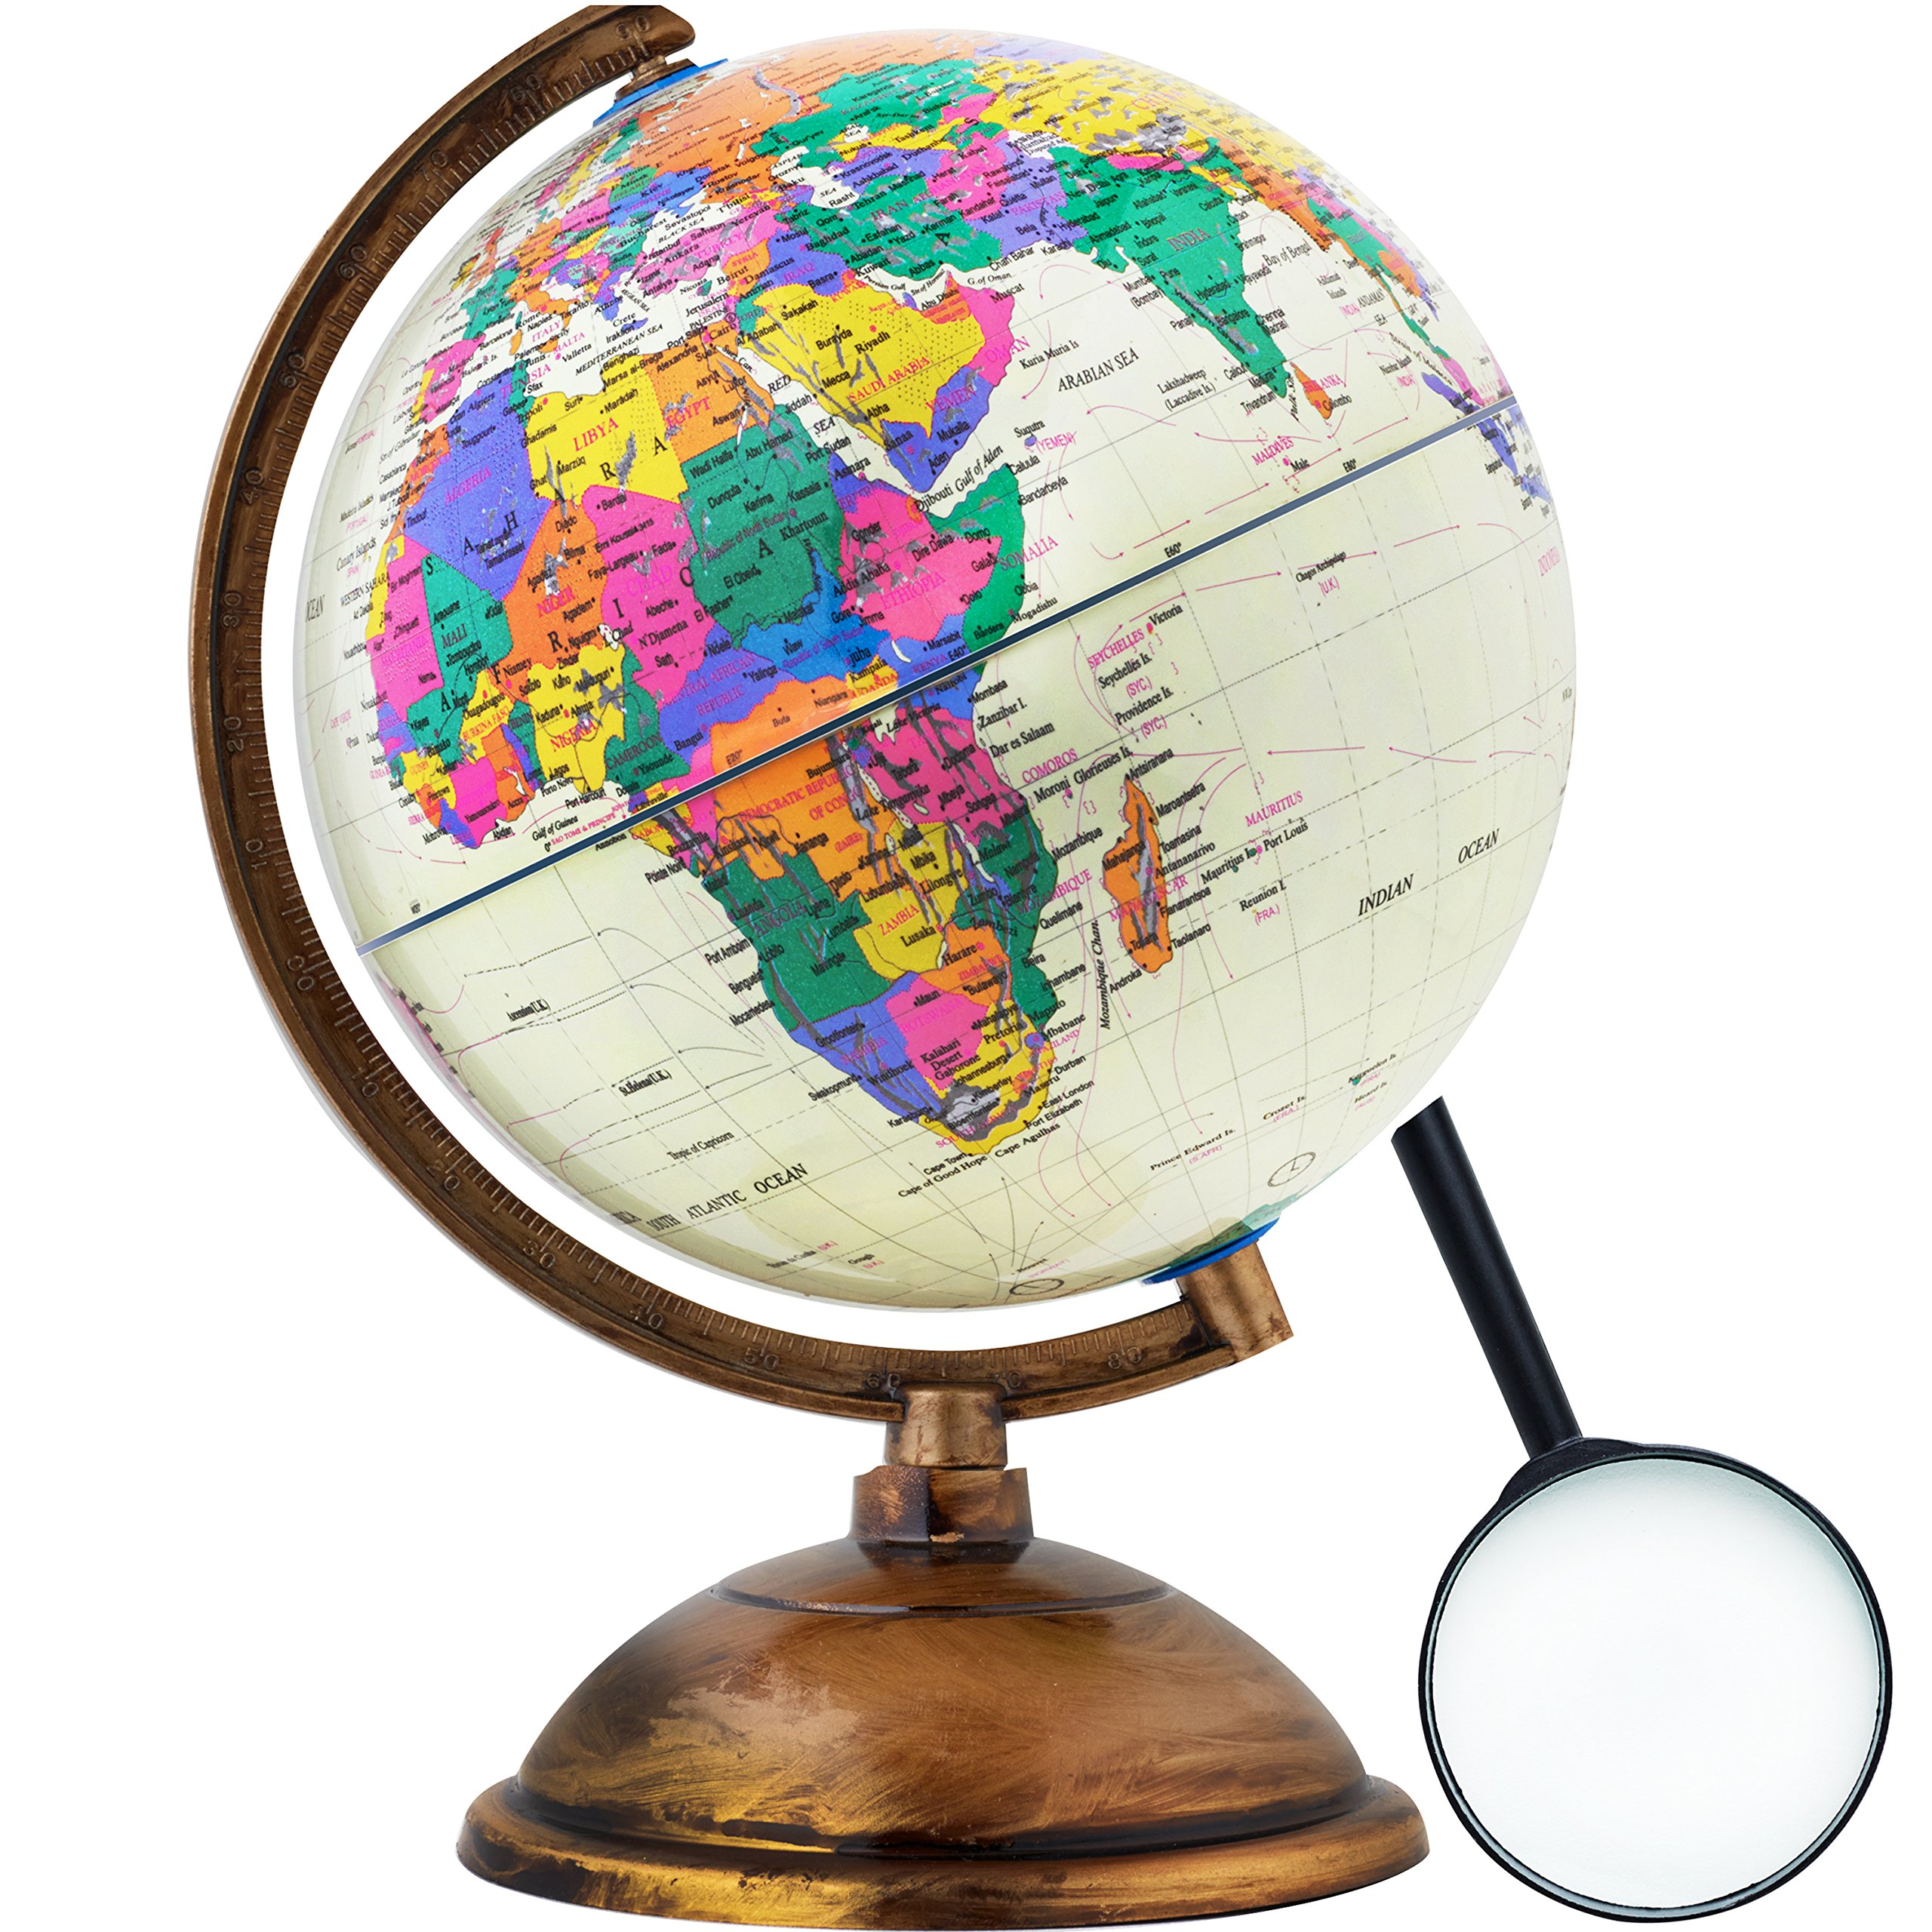 World Globe - Antique Decorative in Style - 12 inch in Total Size with a Magnifying Glass - Kids Educational Learning Toy Engaging Children - Old World Style with a Desktop Stand - Detailed World Map